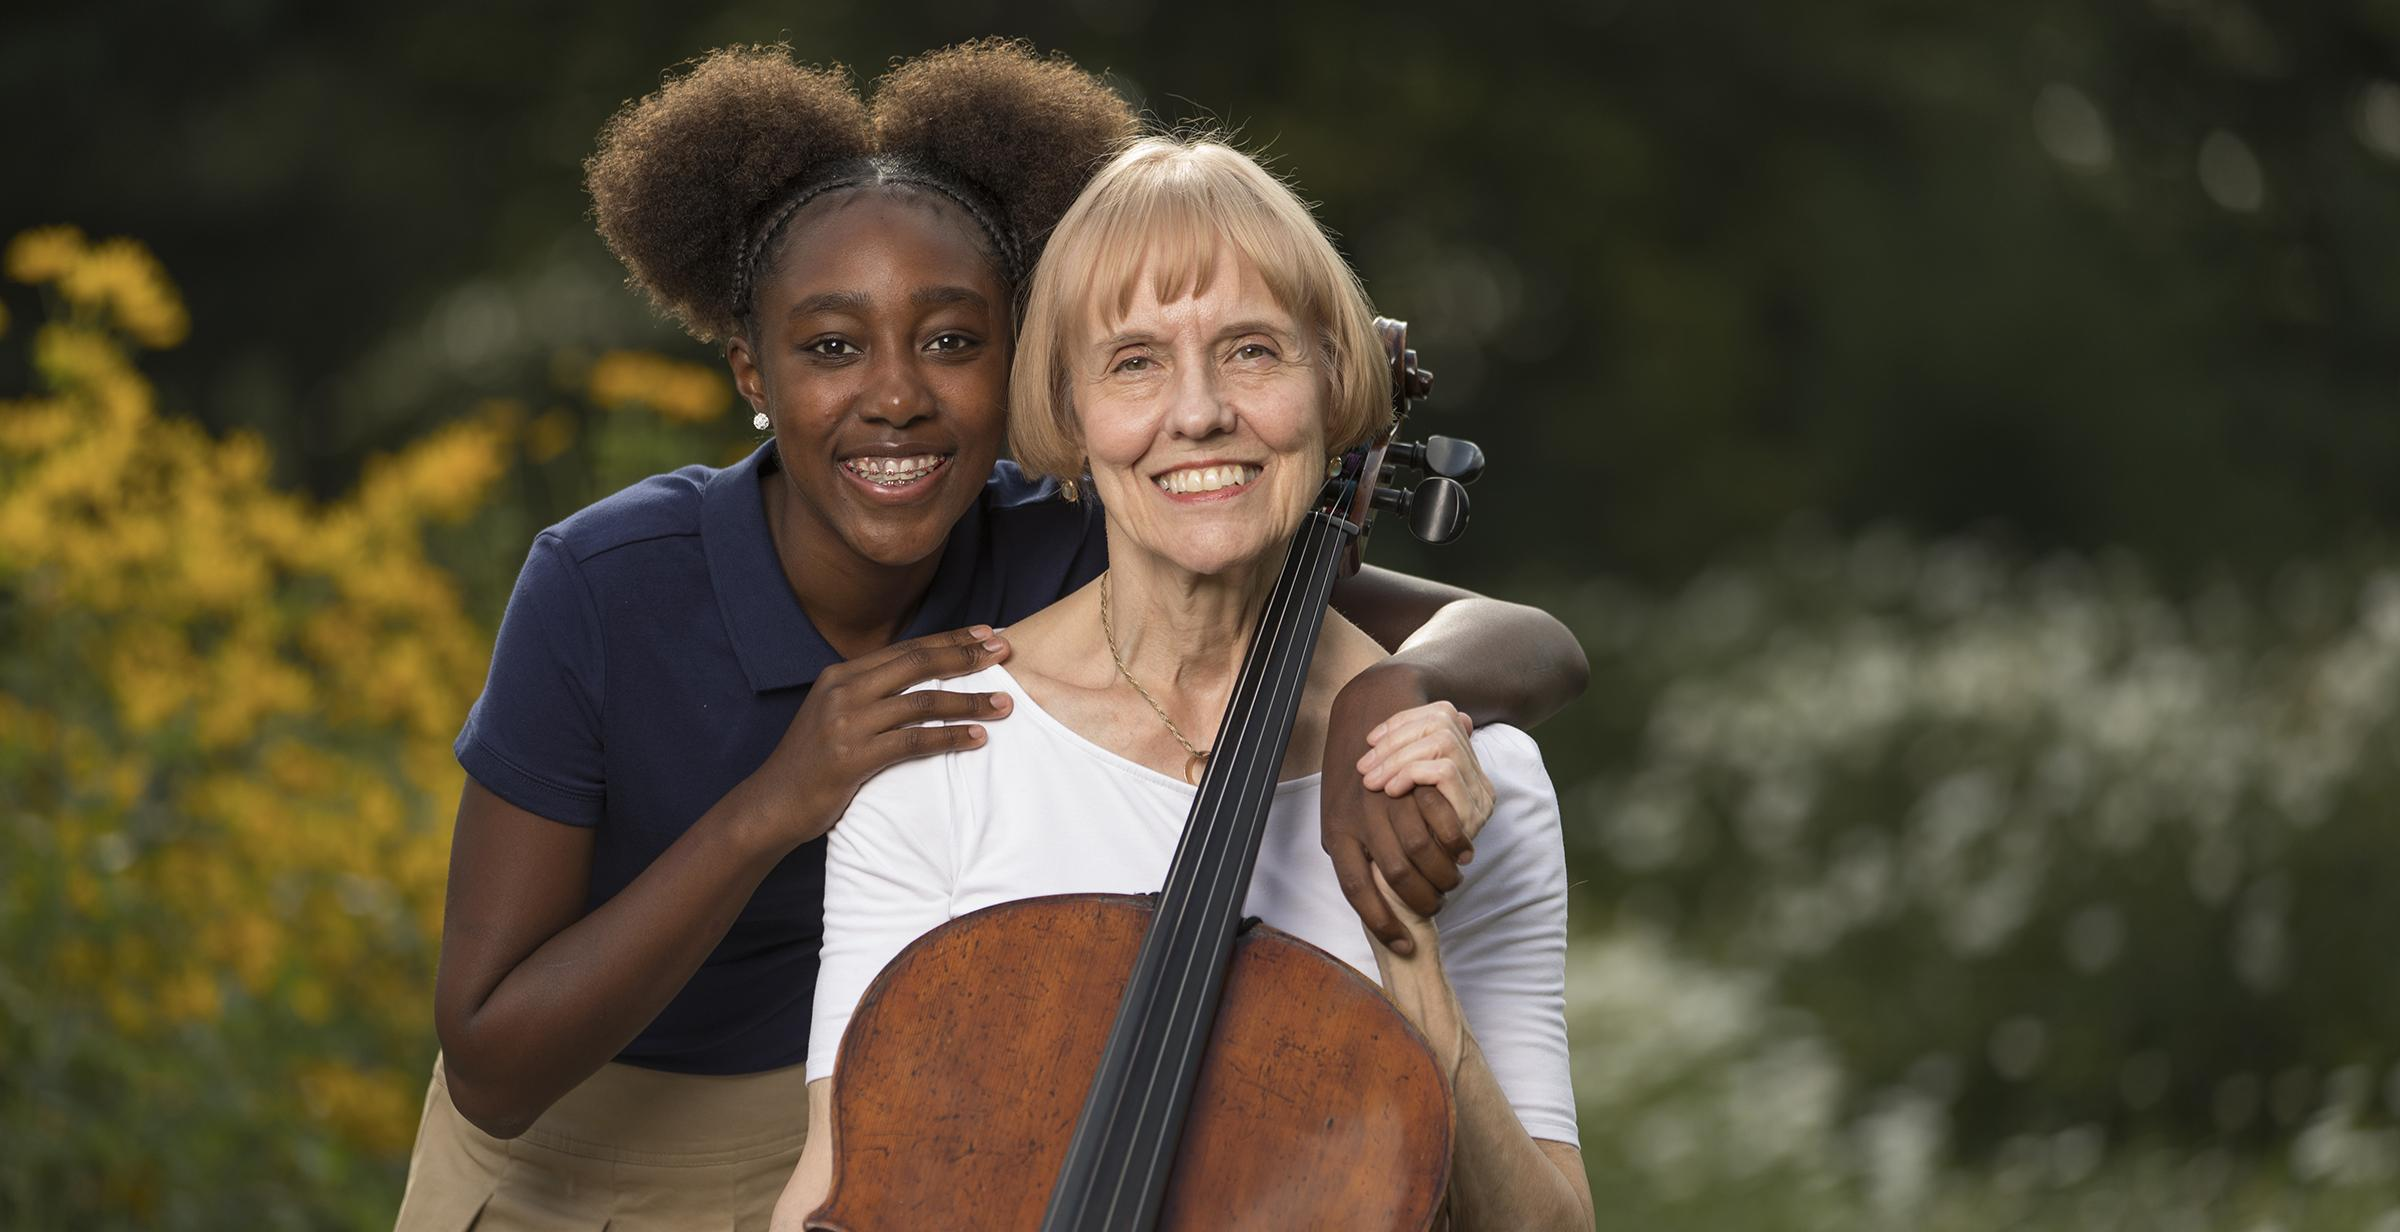 Charlotta Ross shares the gift of music education through the Paul J. and Charlotta Ross Young Musician's Fund. She is pictured here with granddaughter, McKenzie. Family members are not eligible for scholarships.